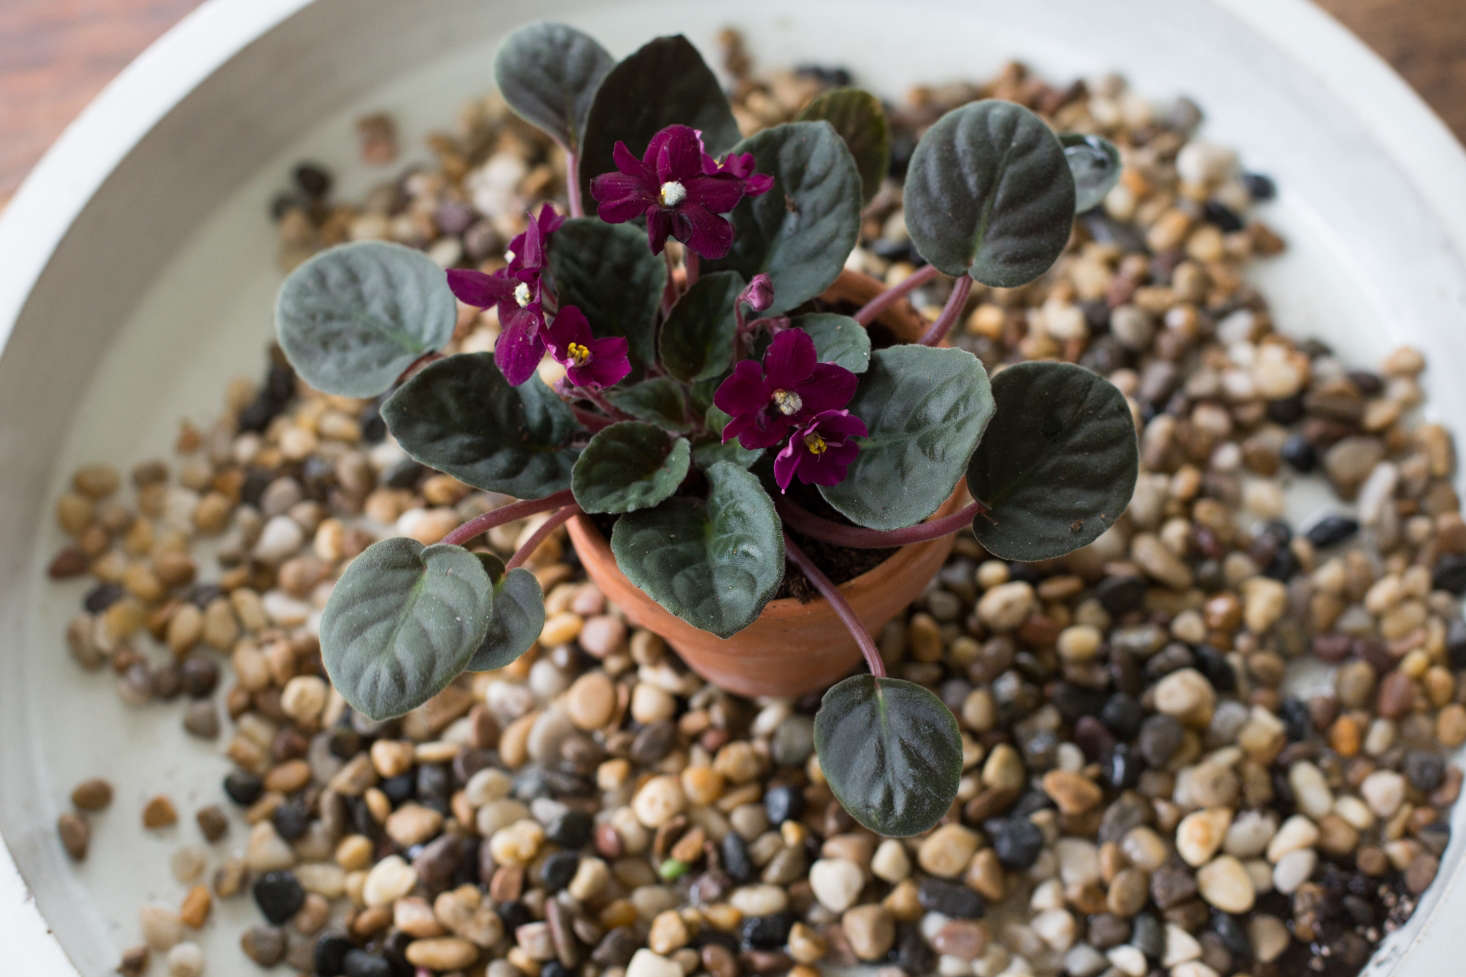 African violets thrive in humid conditions. Increase humidity levels by setting their pots on a layer of wet gravel; as the water evaporates, they&#8